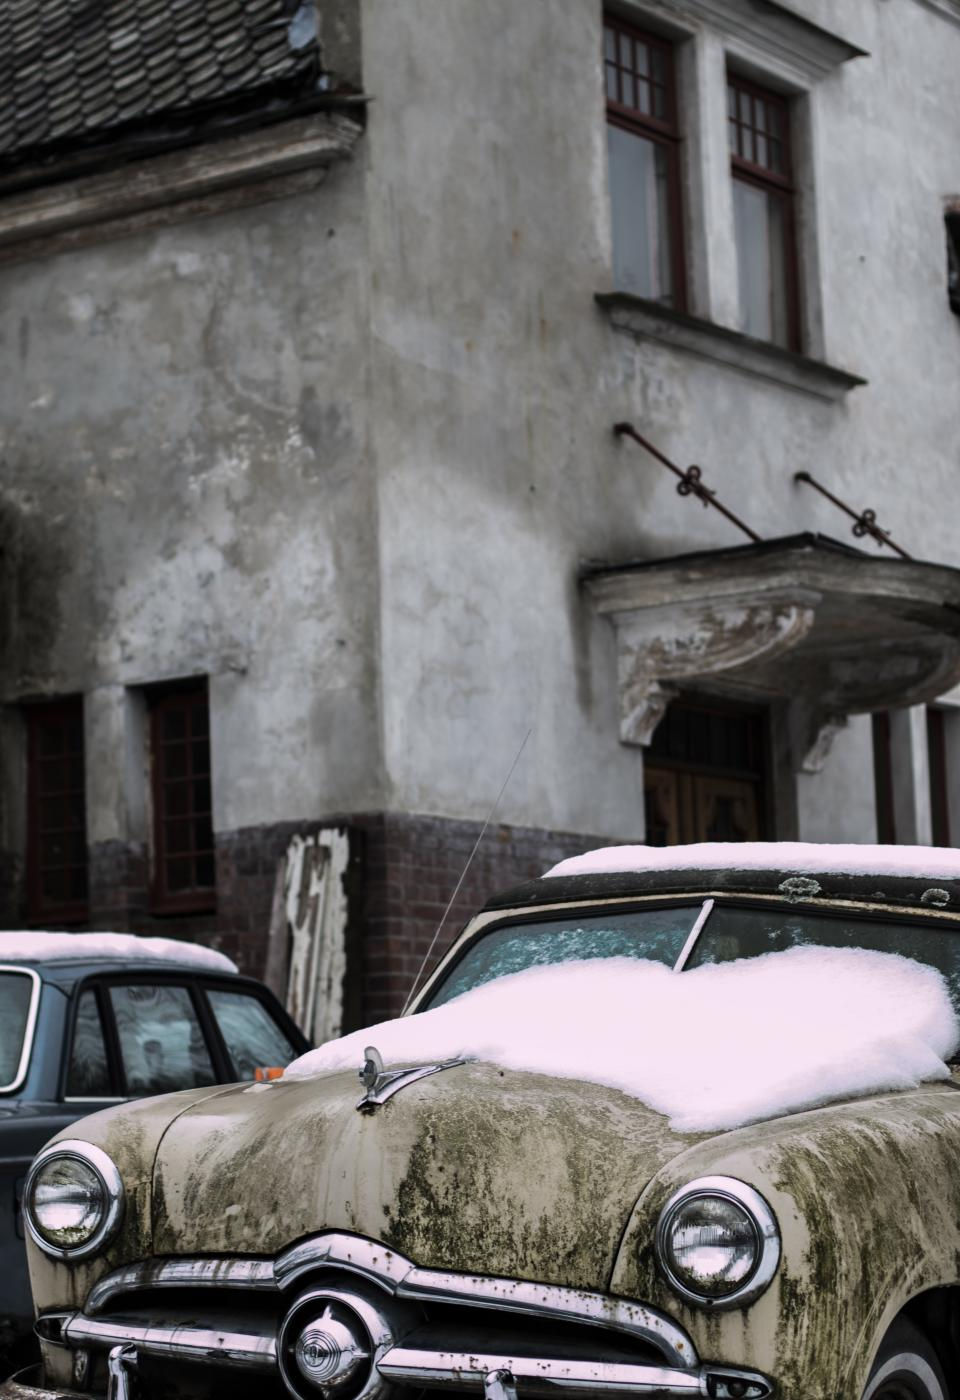 car snow cold winter windshield house building vintage